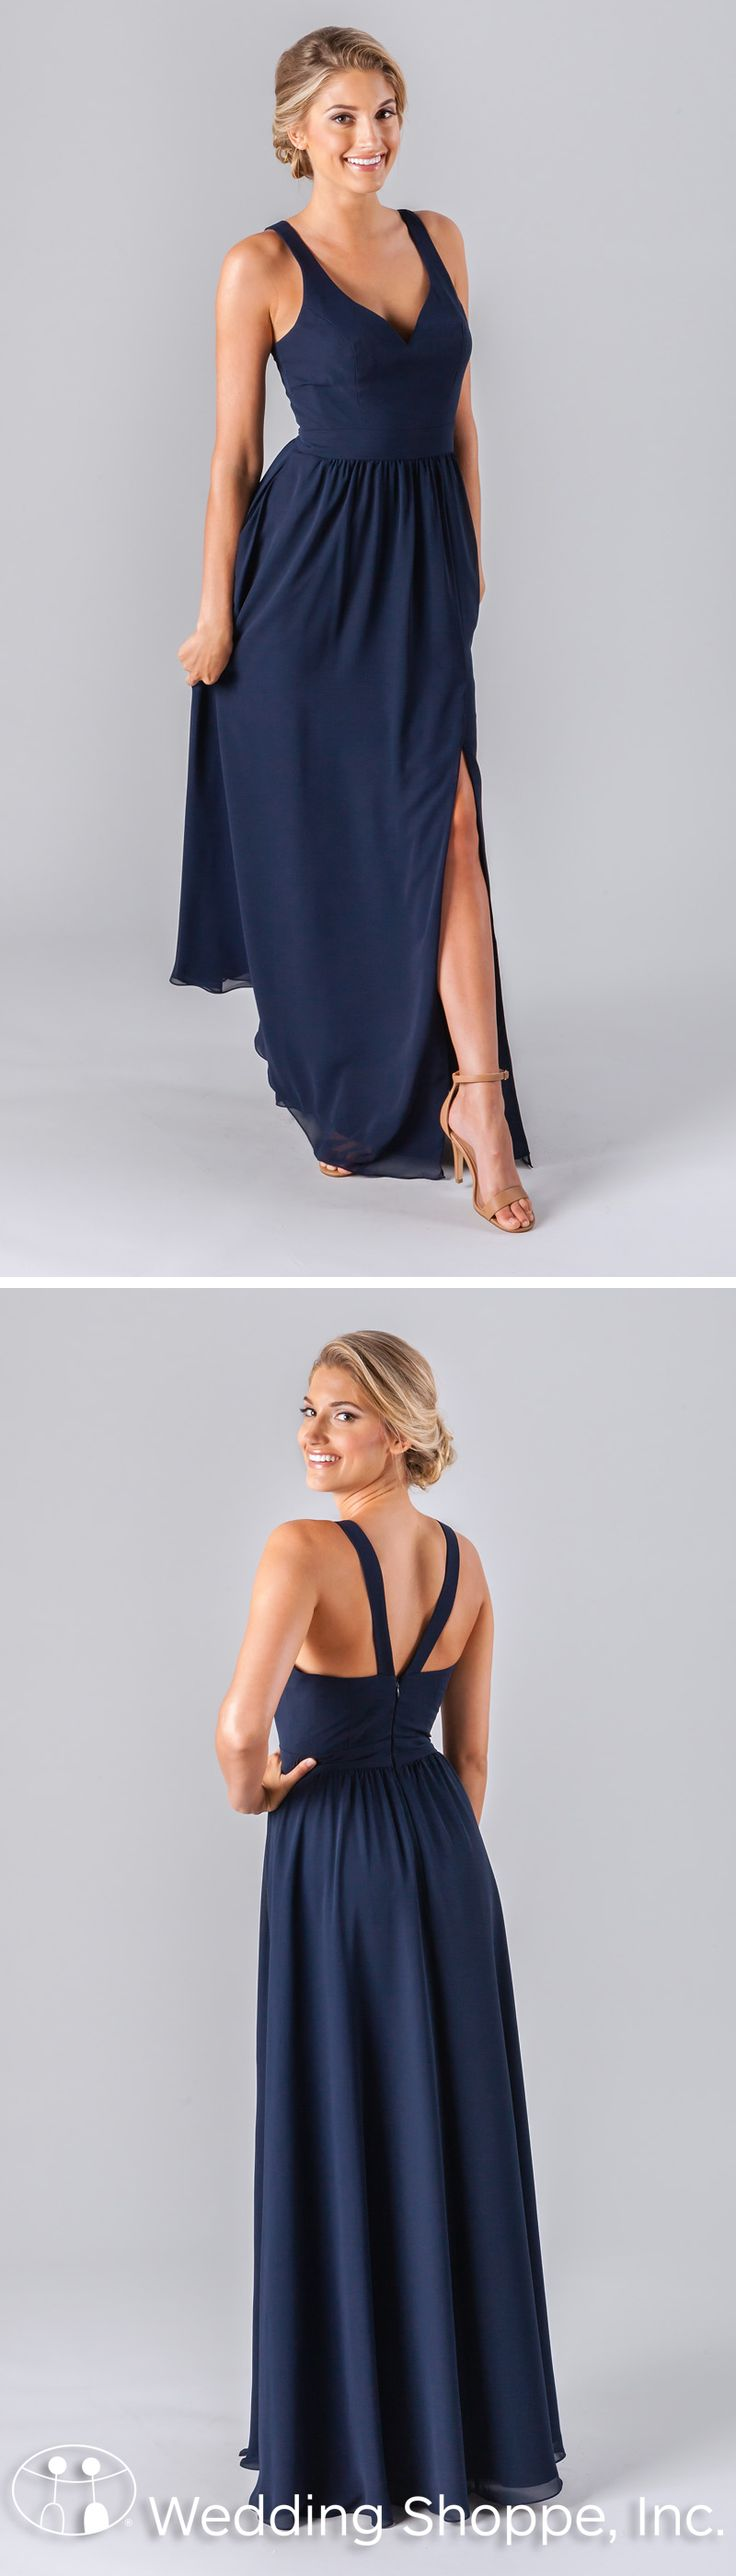 Kennedy Blue Riley: A simple navy bridesmaid dress in a long A-line style made of breathable, luxe chiffon fabric. The plain bodice features an elongating V-neckline and the straps create a V-back.